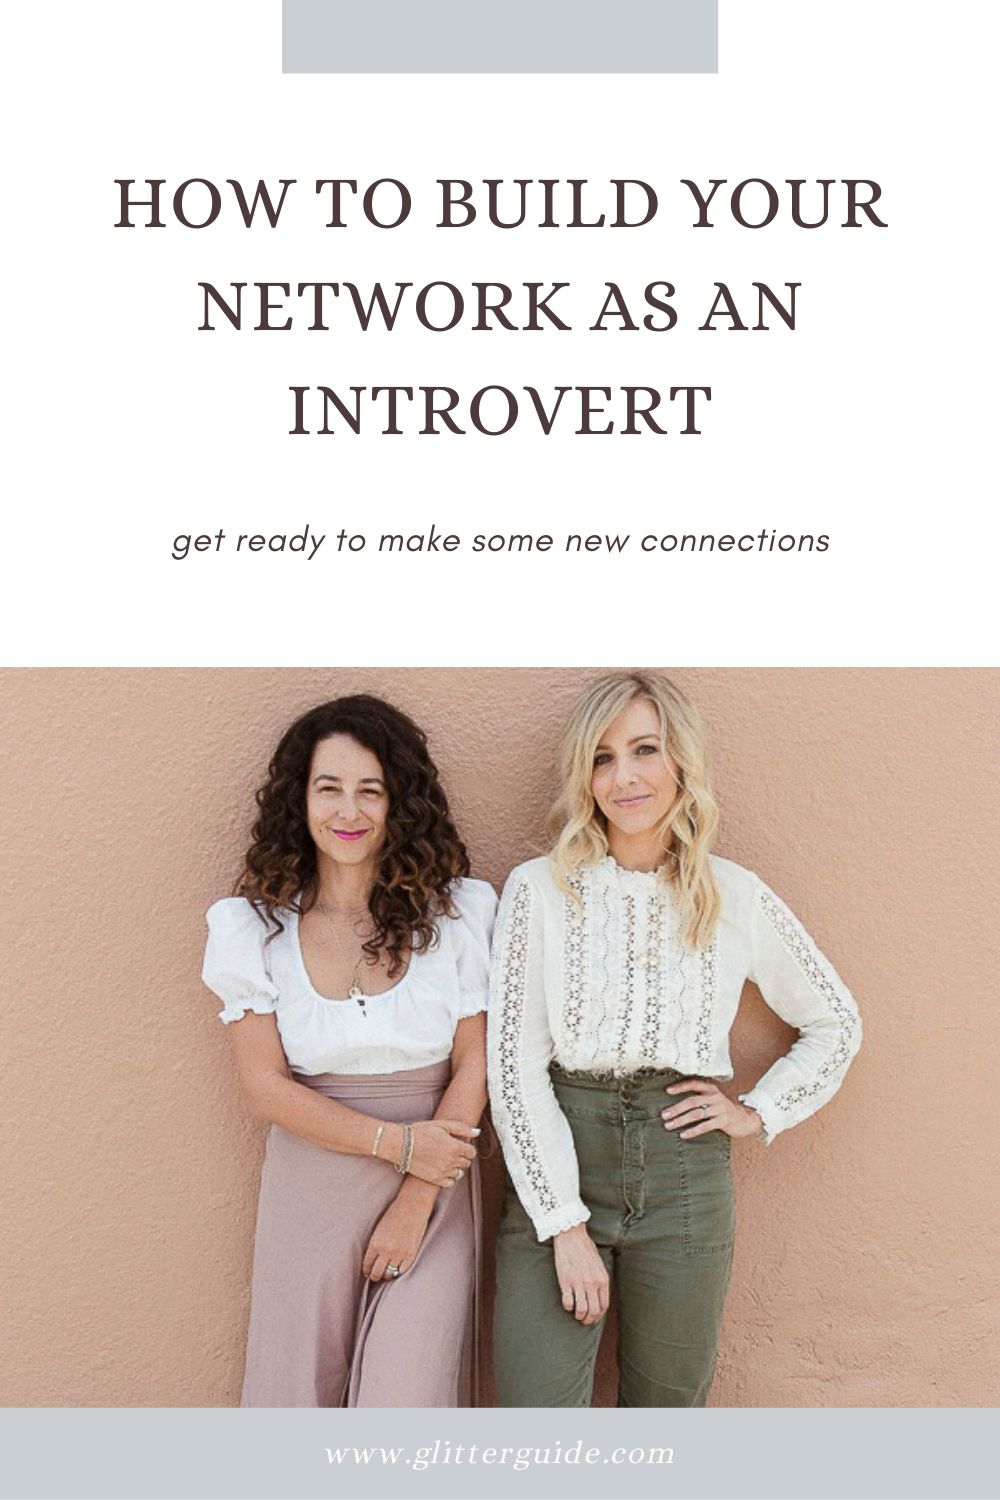 How To Build Your Network As An Introvert